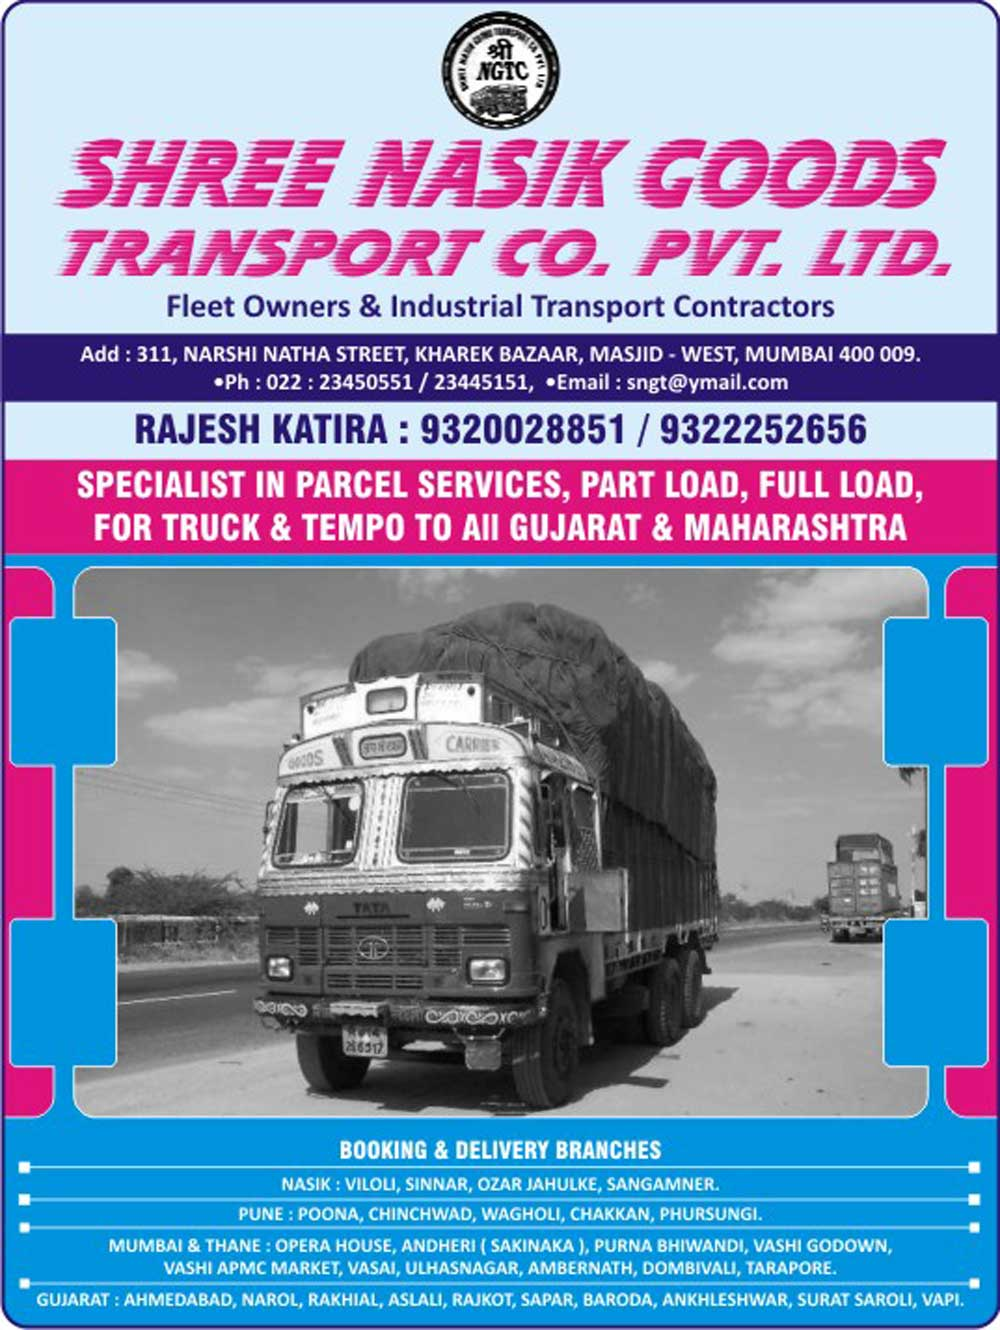 Shree Nashik Goods Transport Co